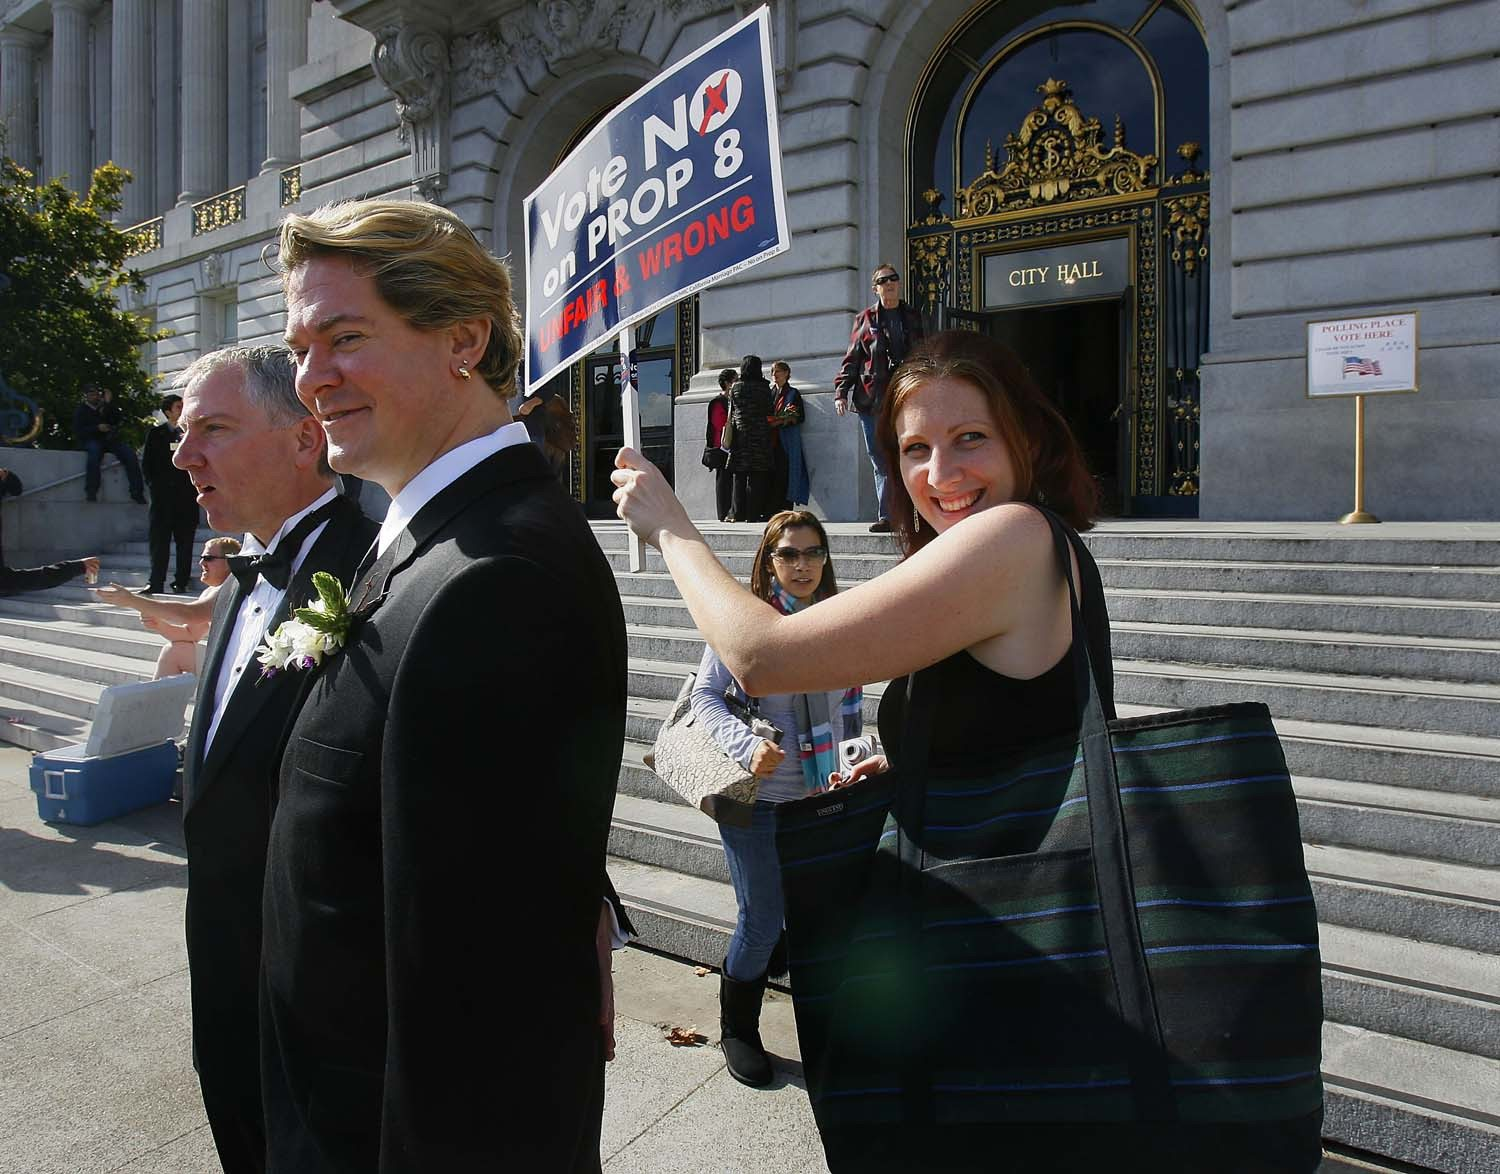 (AP file photo)California's highest court says ballot proposition sponsors can step in to defend their initiatives from legal challenges if the state's governor and attorney general refuse to do so.